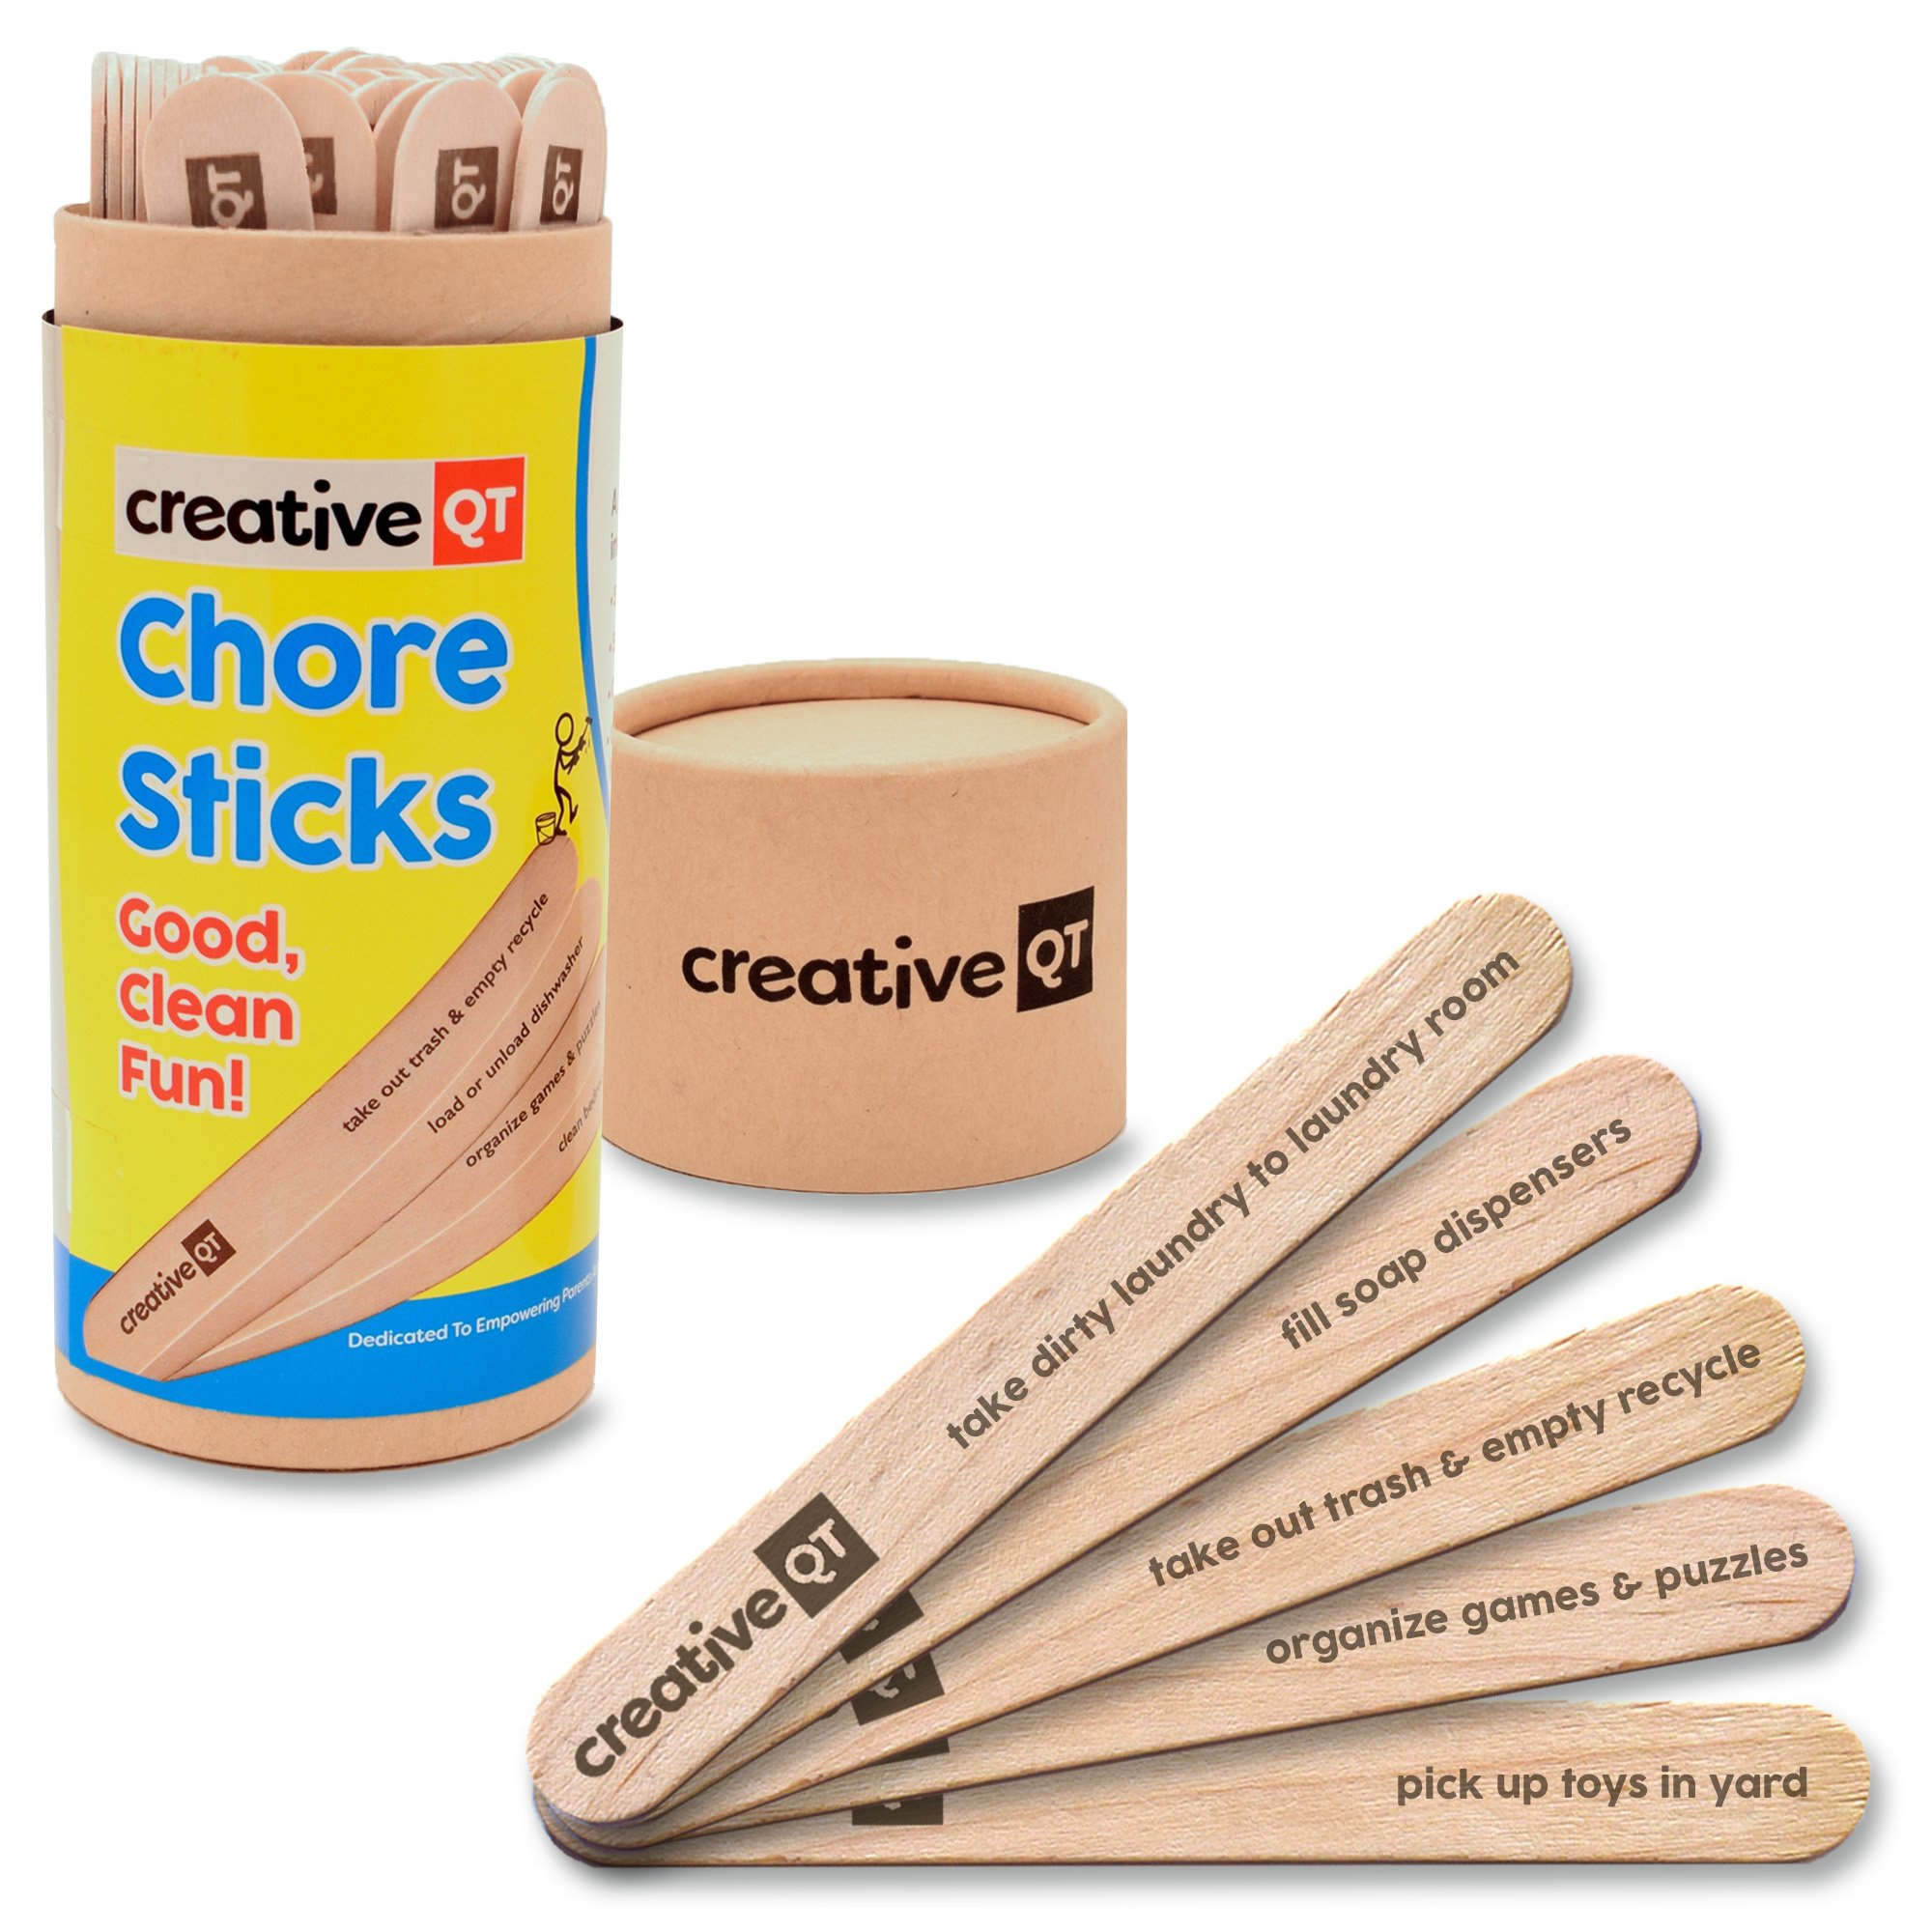 Creative QT Chore Sticks - Make It A Game For Your Kids To Help Out Around The House – A Fun Alternative To a Chore Chart That Will Keep Them Coming Back For More – Good, Clean Fun